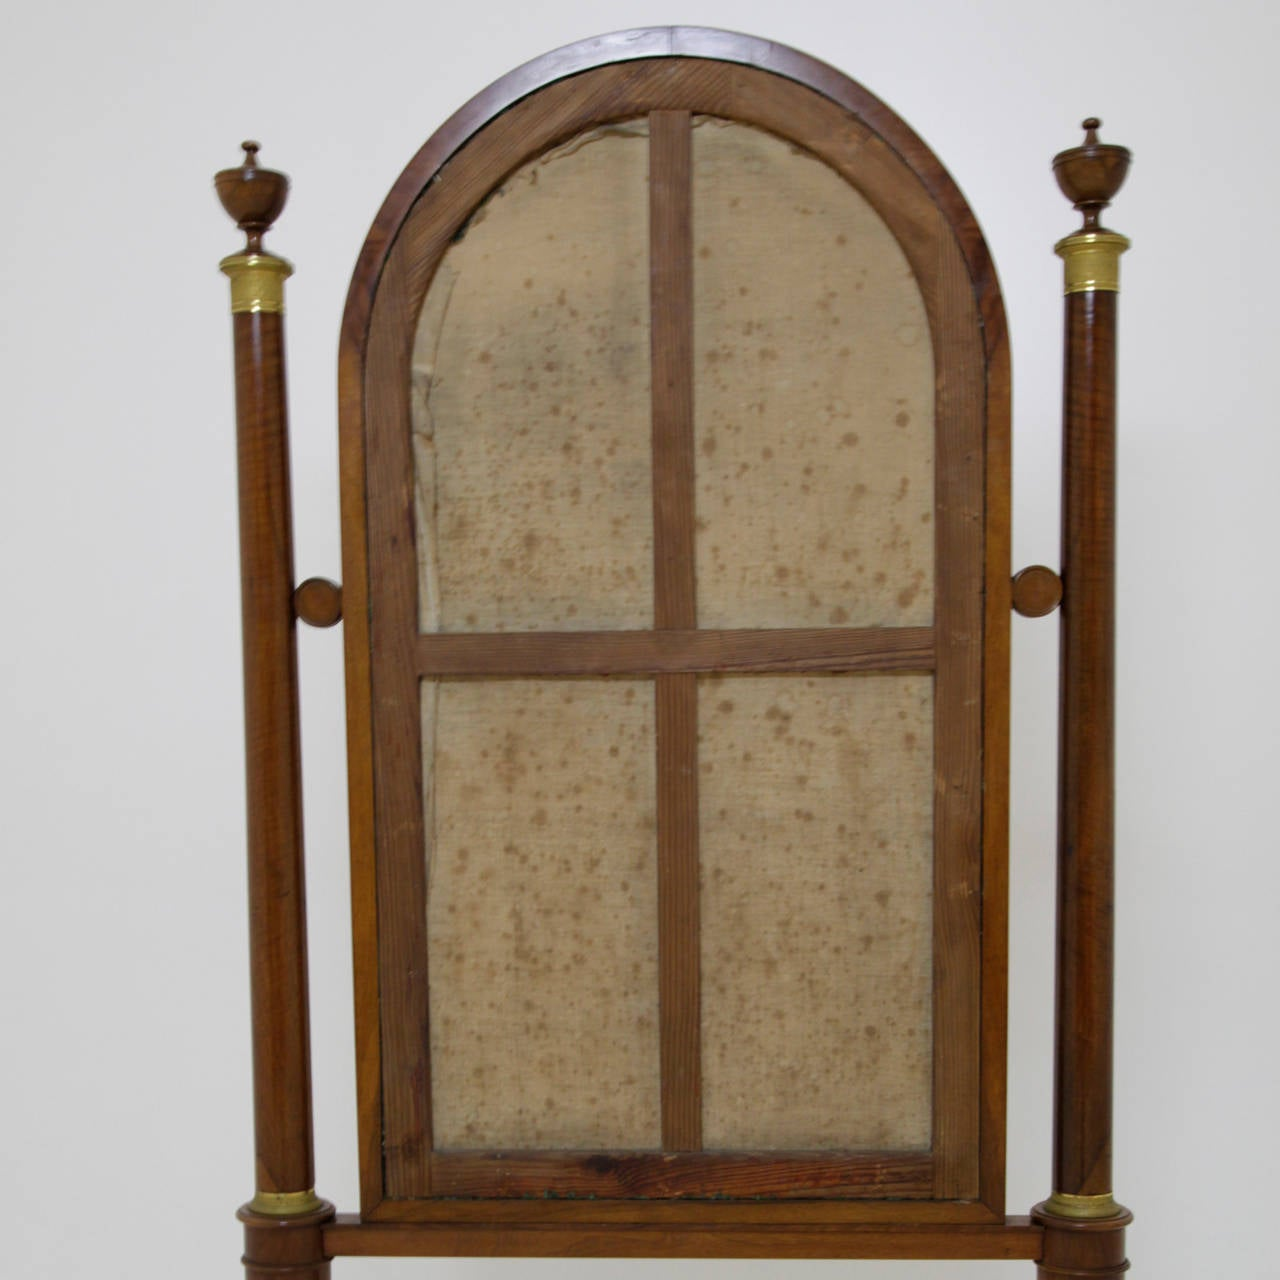 Exclusive French Biedermeier Fireplace Screen 1820s For Sale At 1stdibs